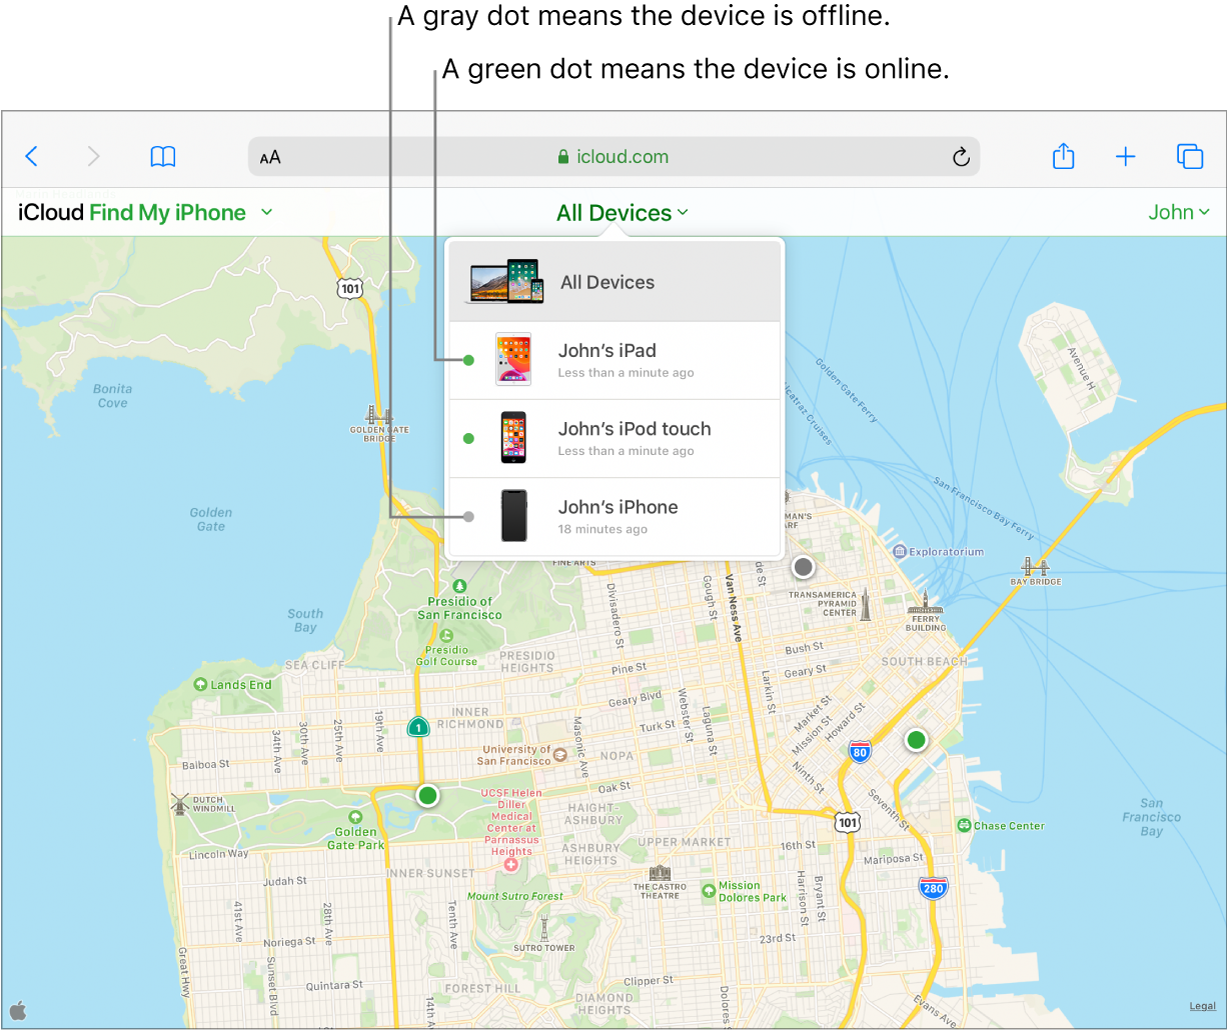 Find My iPhone on iCloud.com open in Safari on an iPad. The locations of three devices are shown on a map of San Francisco. John's iPad and John's iPod touch are online and indicated by green dots. John's iPhone is offline and indicated by a grey dot.